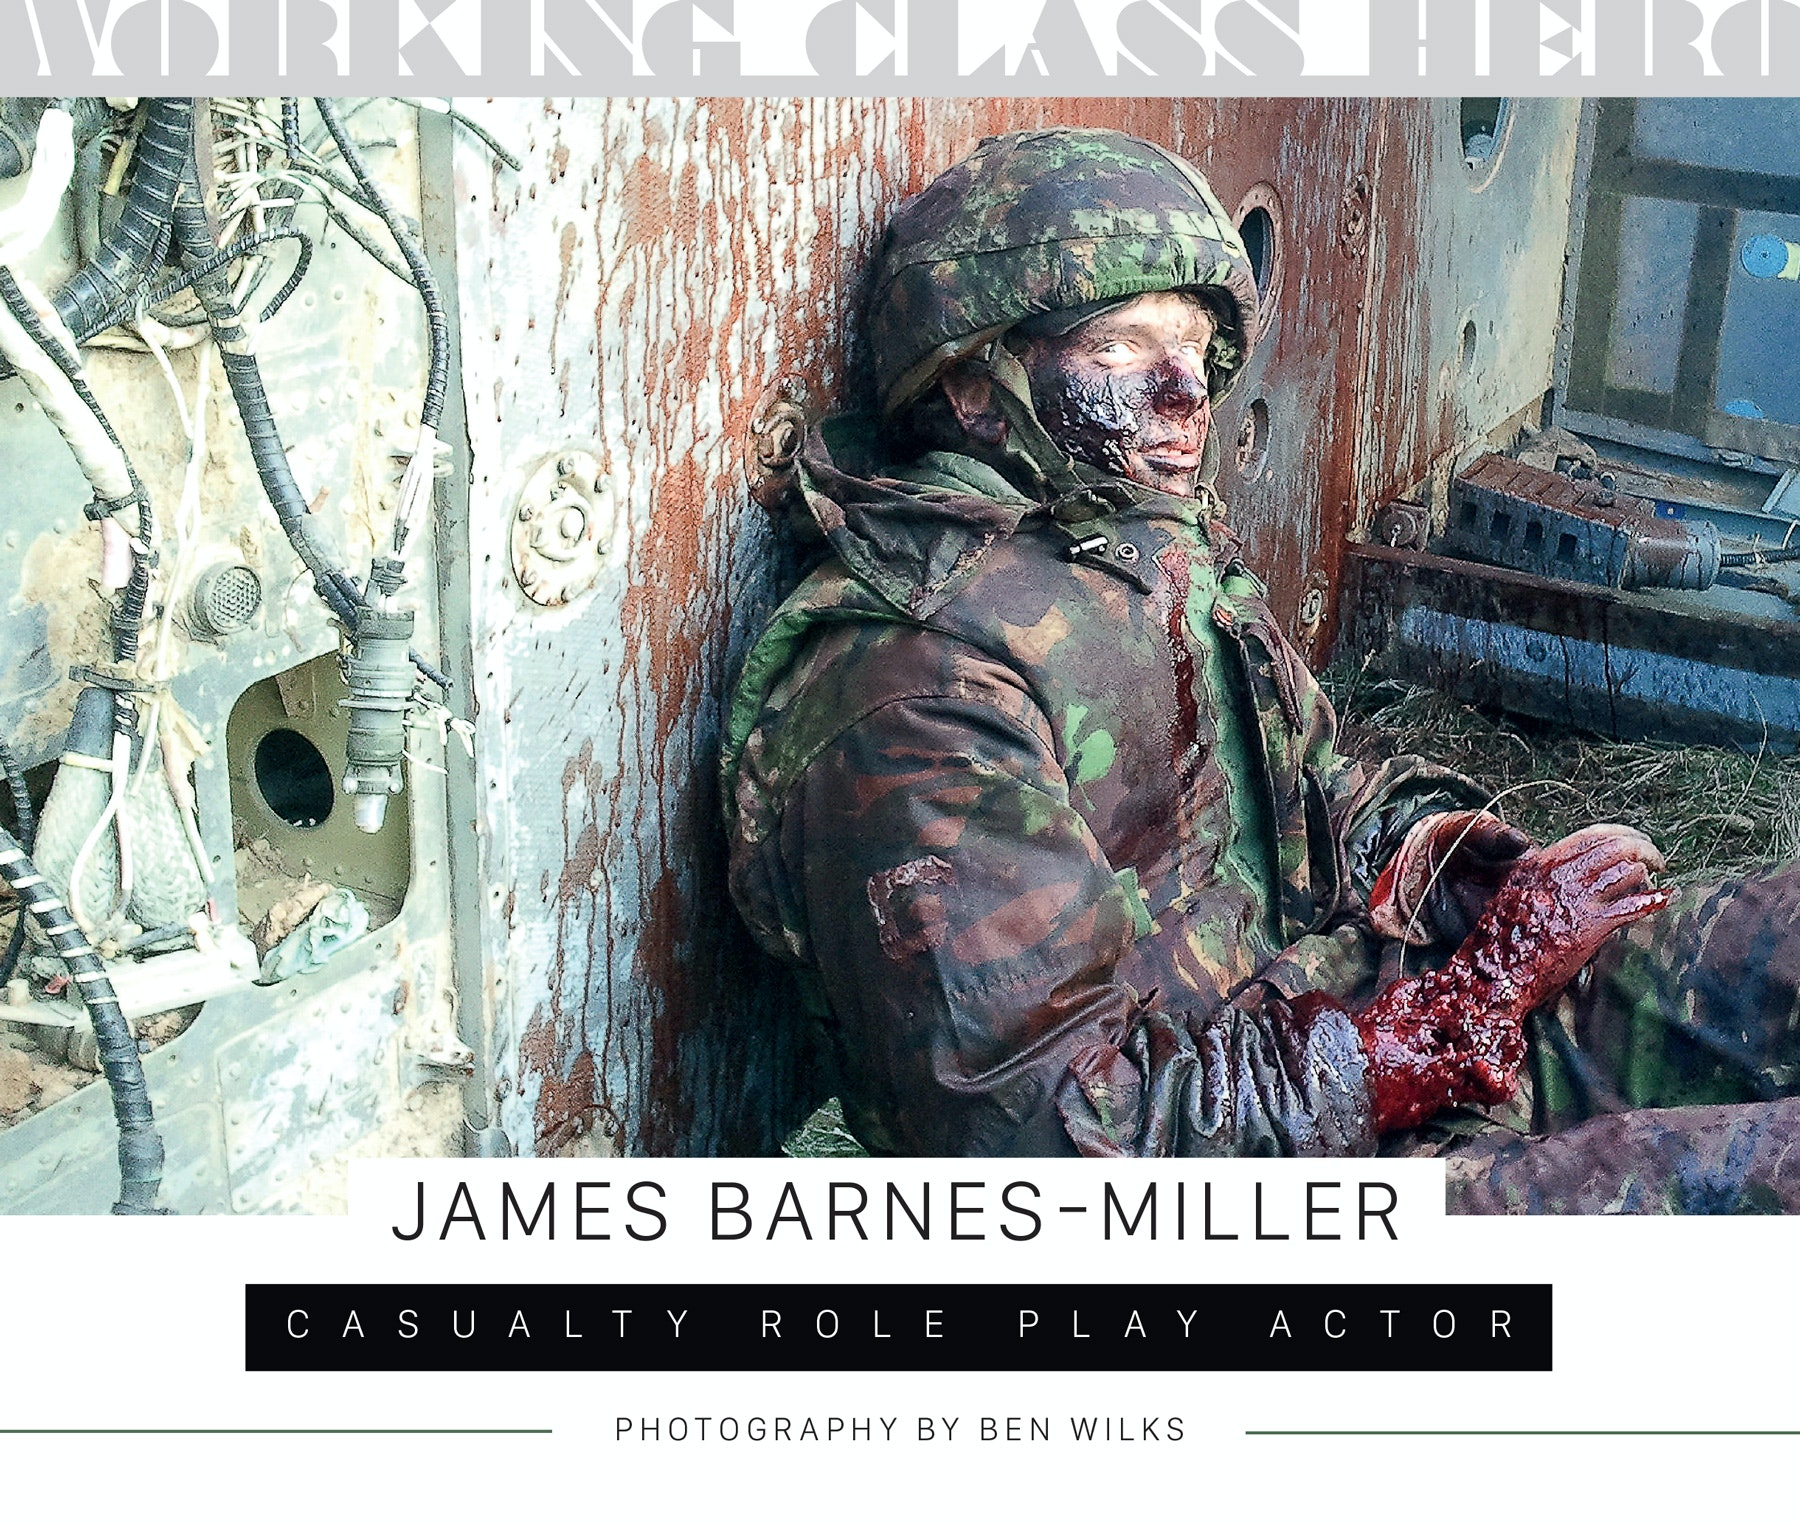 Working Class Hero – James Barnes-Miller